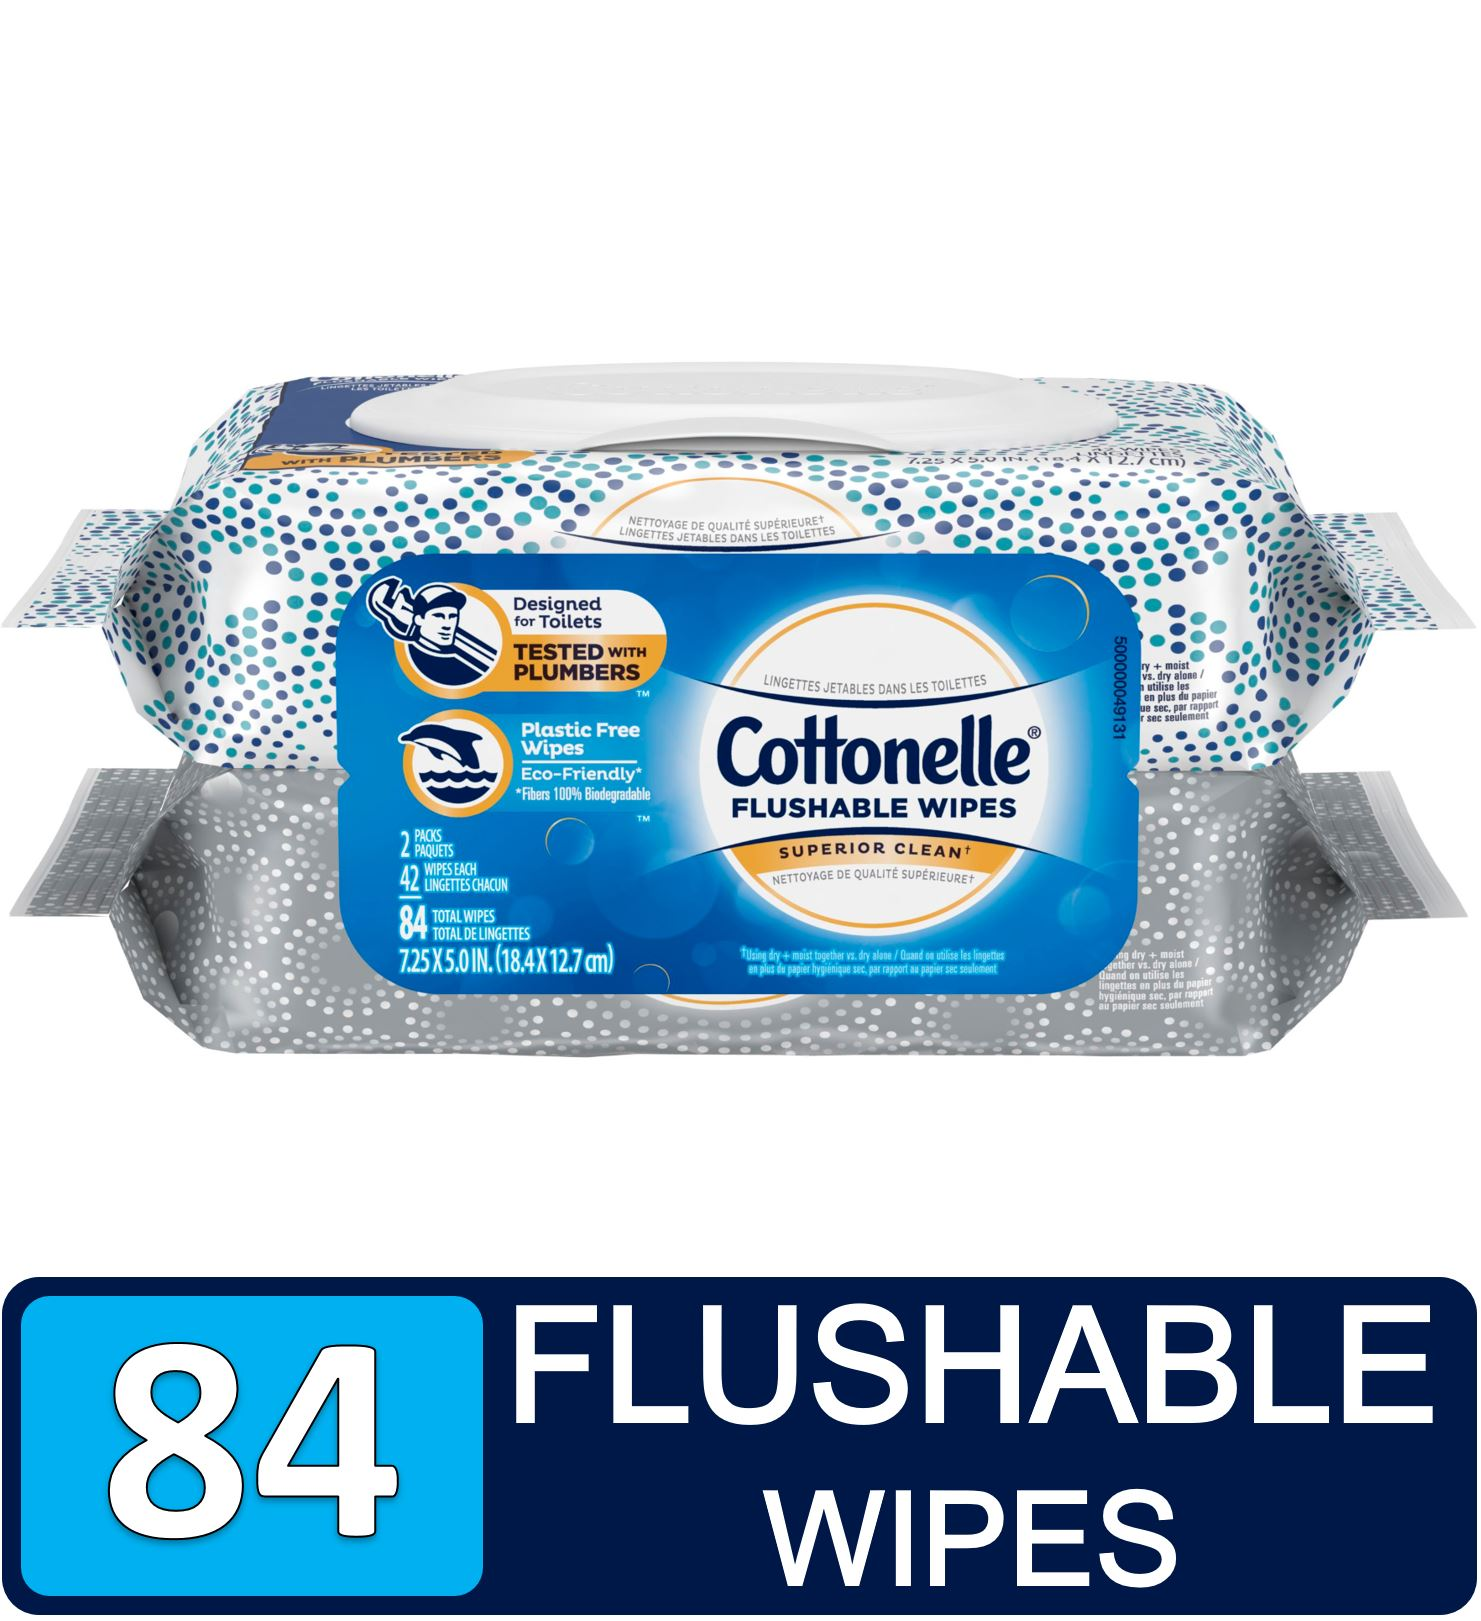 Cottonelle FreshCare Flushable Flushable Wipes, 2 Flip-Top Packs, 42 Wipes Per Pack (84 Total Wipes)